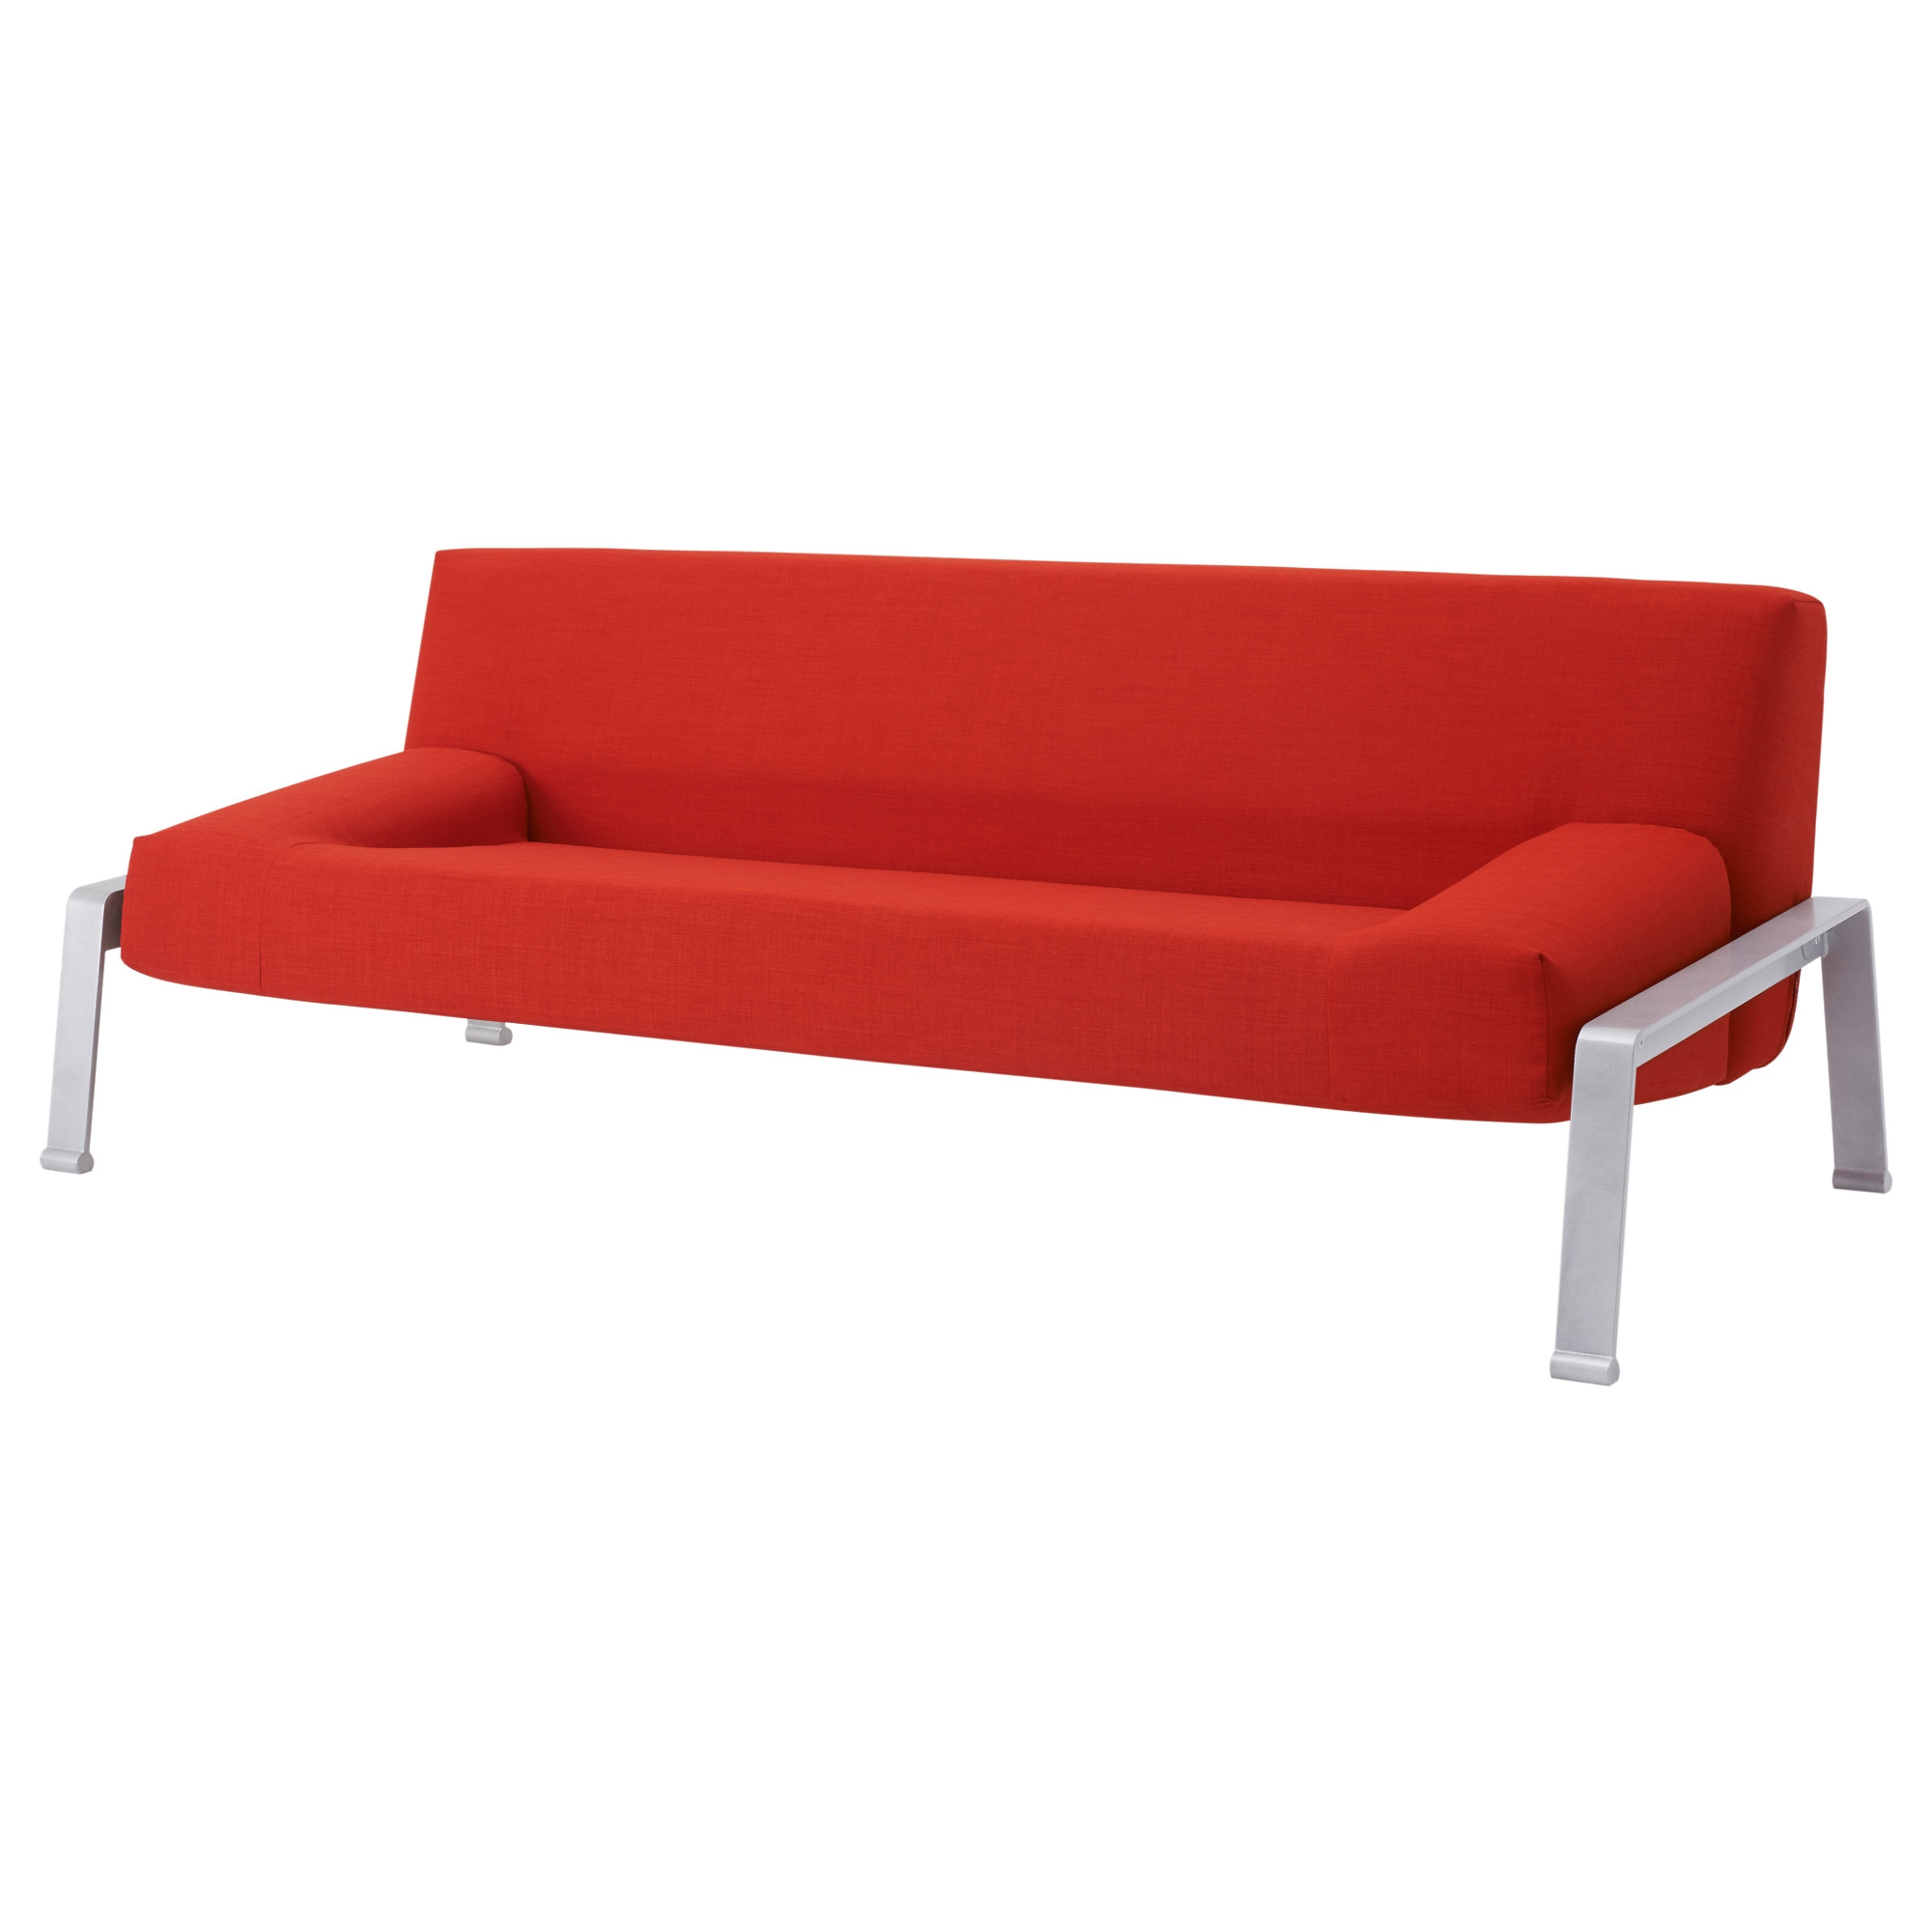 Sofa bed with storage ikea - Erska Sleeper Sofa Skiftebo Orange Length Open 78 3 4 Width